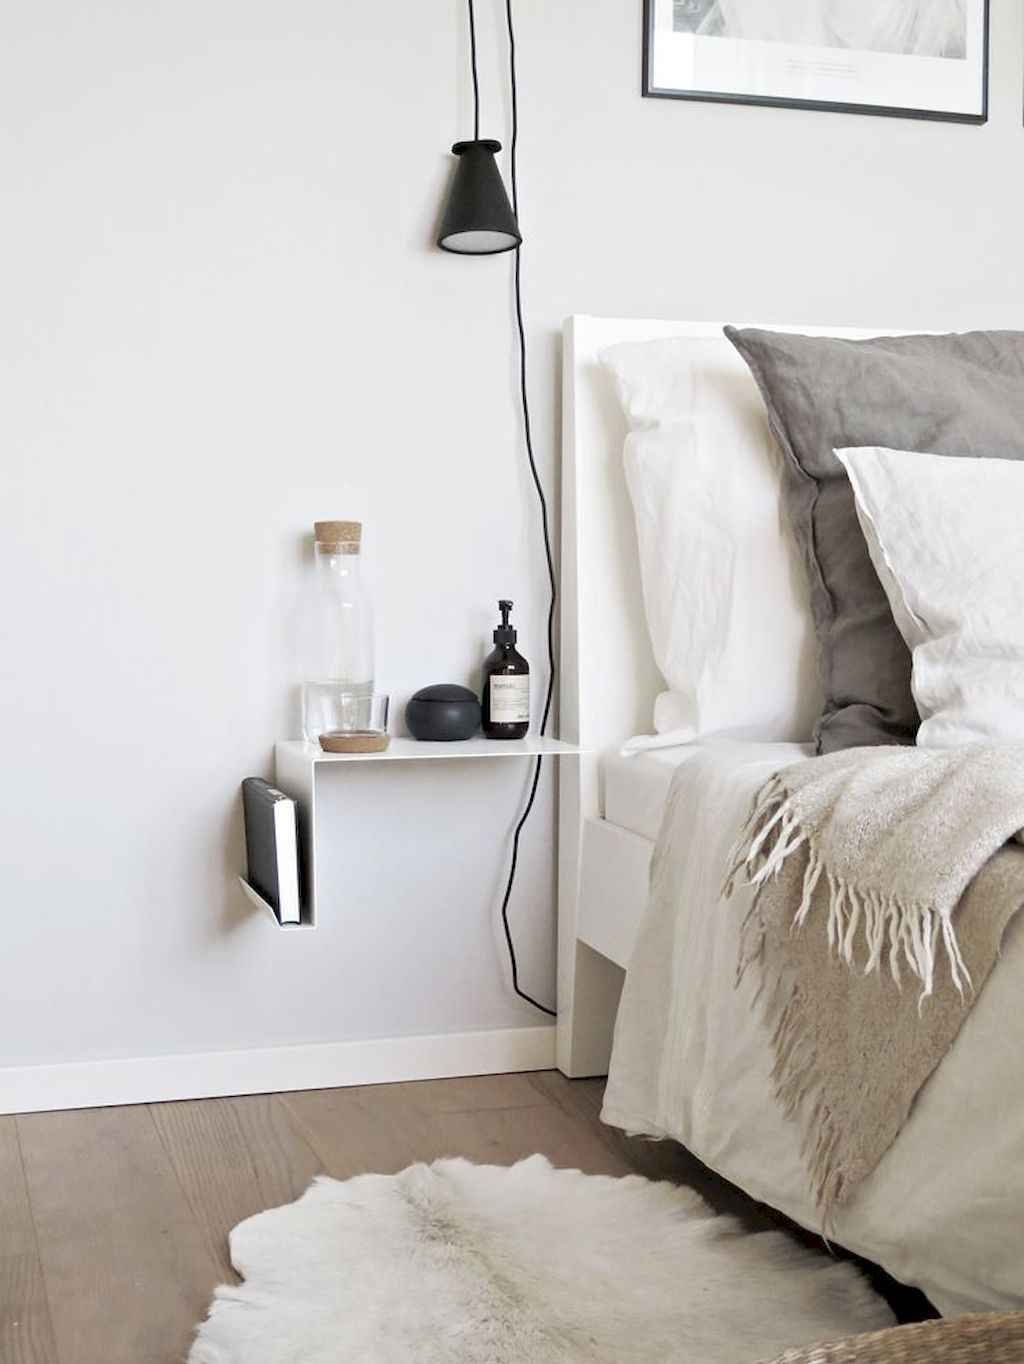 70 Cozy Minimalist Bedroom Design Trends - Gladecor.com